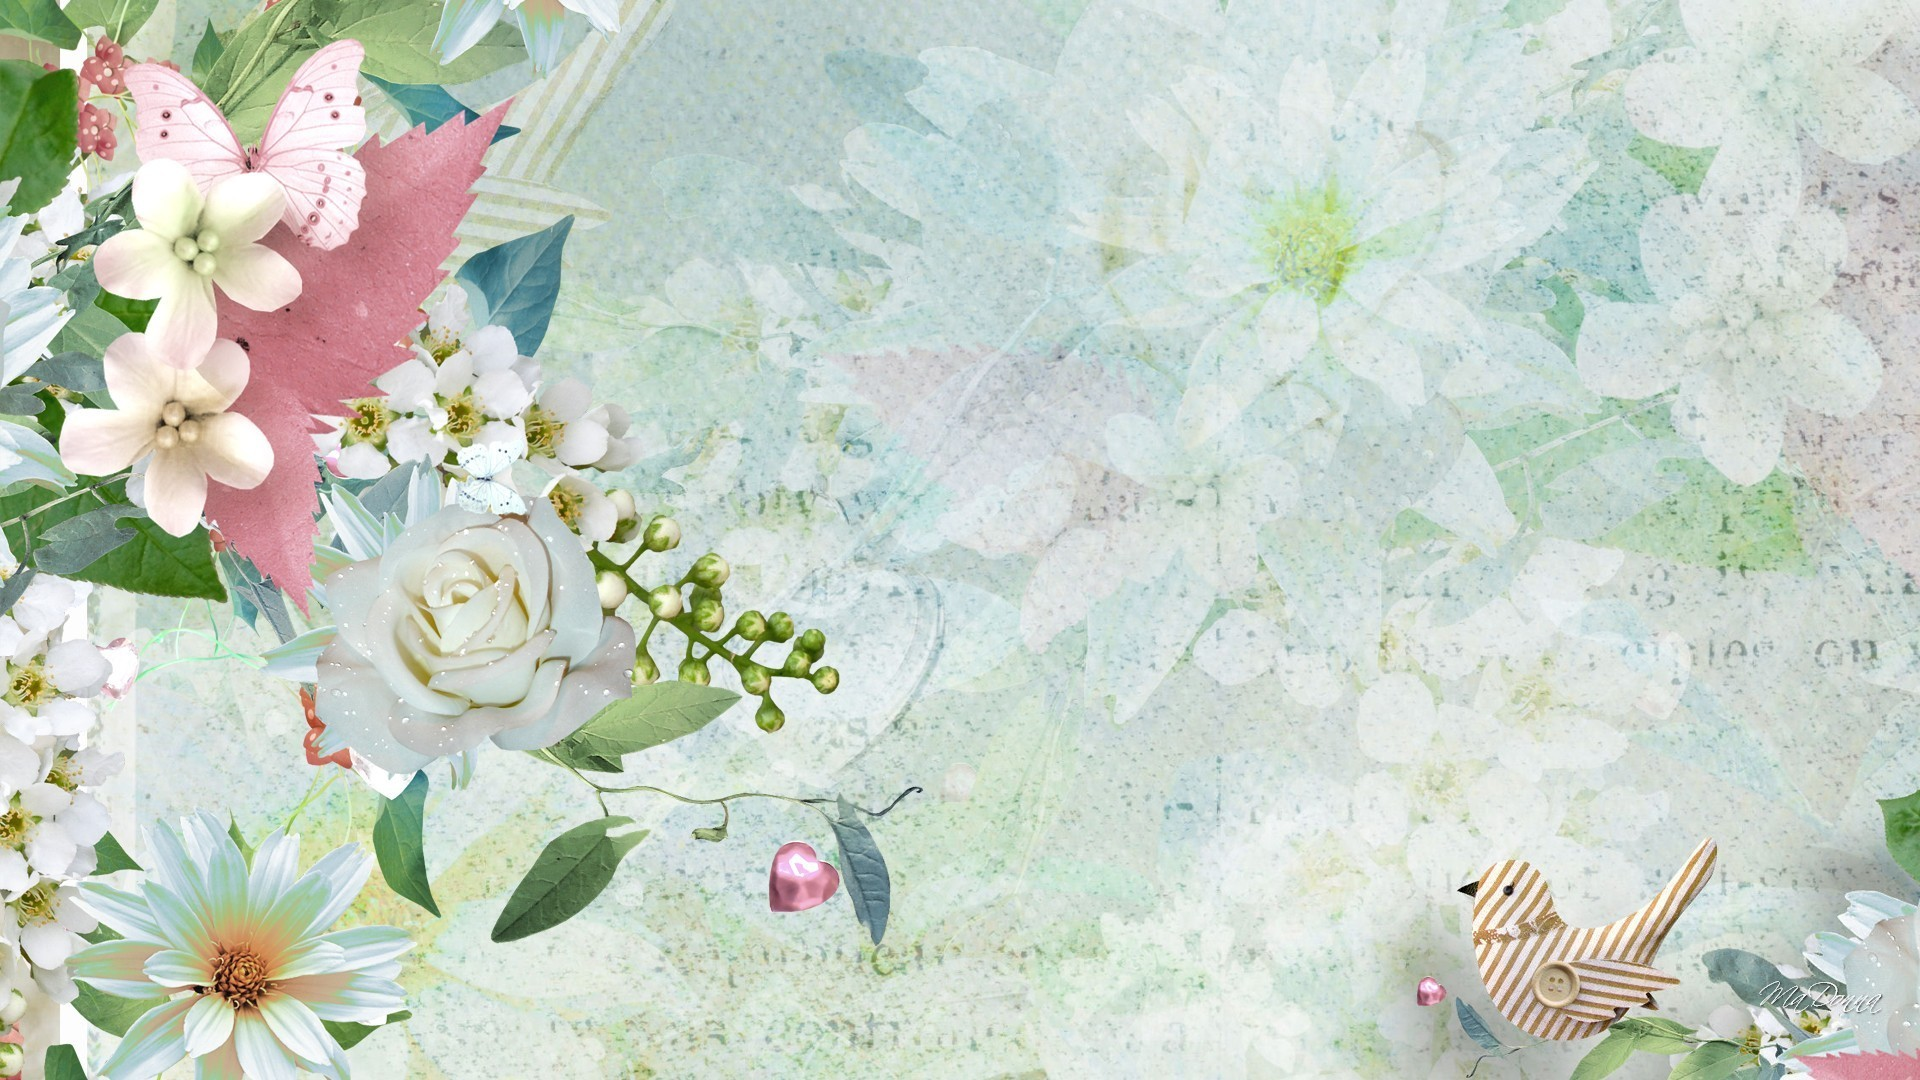 Abstract Spring Wallpaper 47 Images